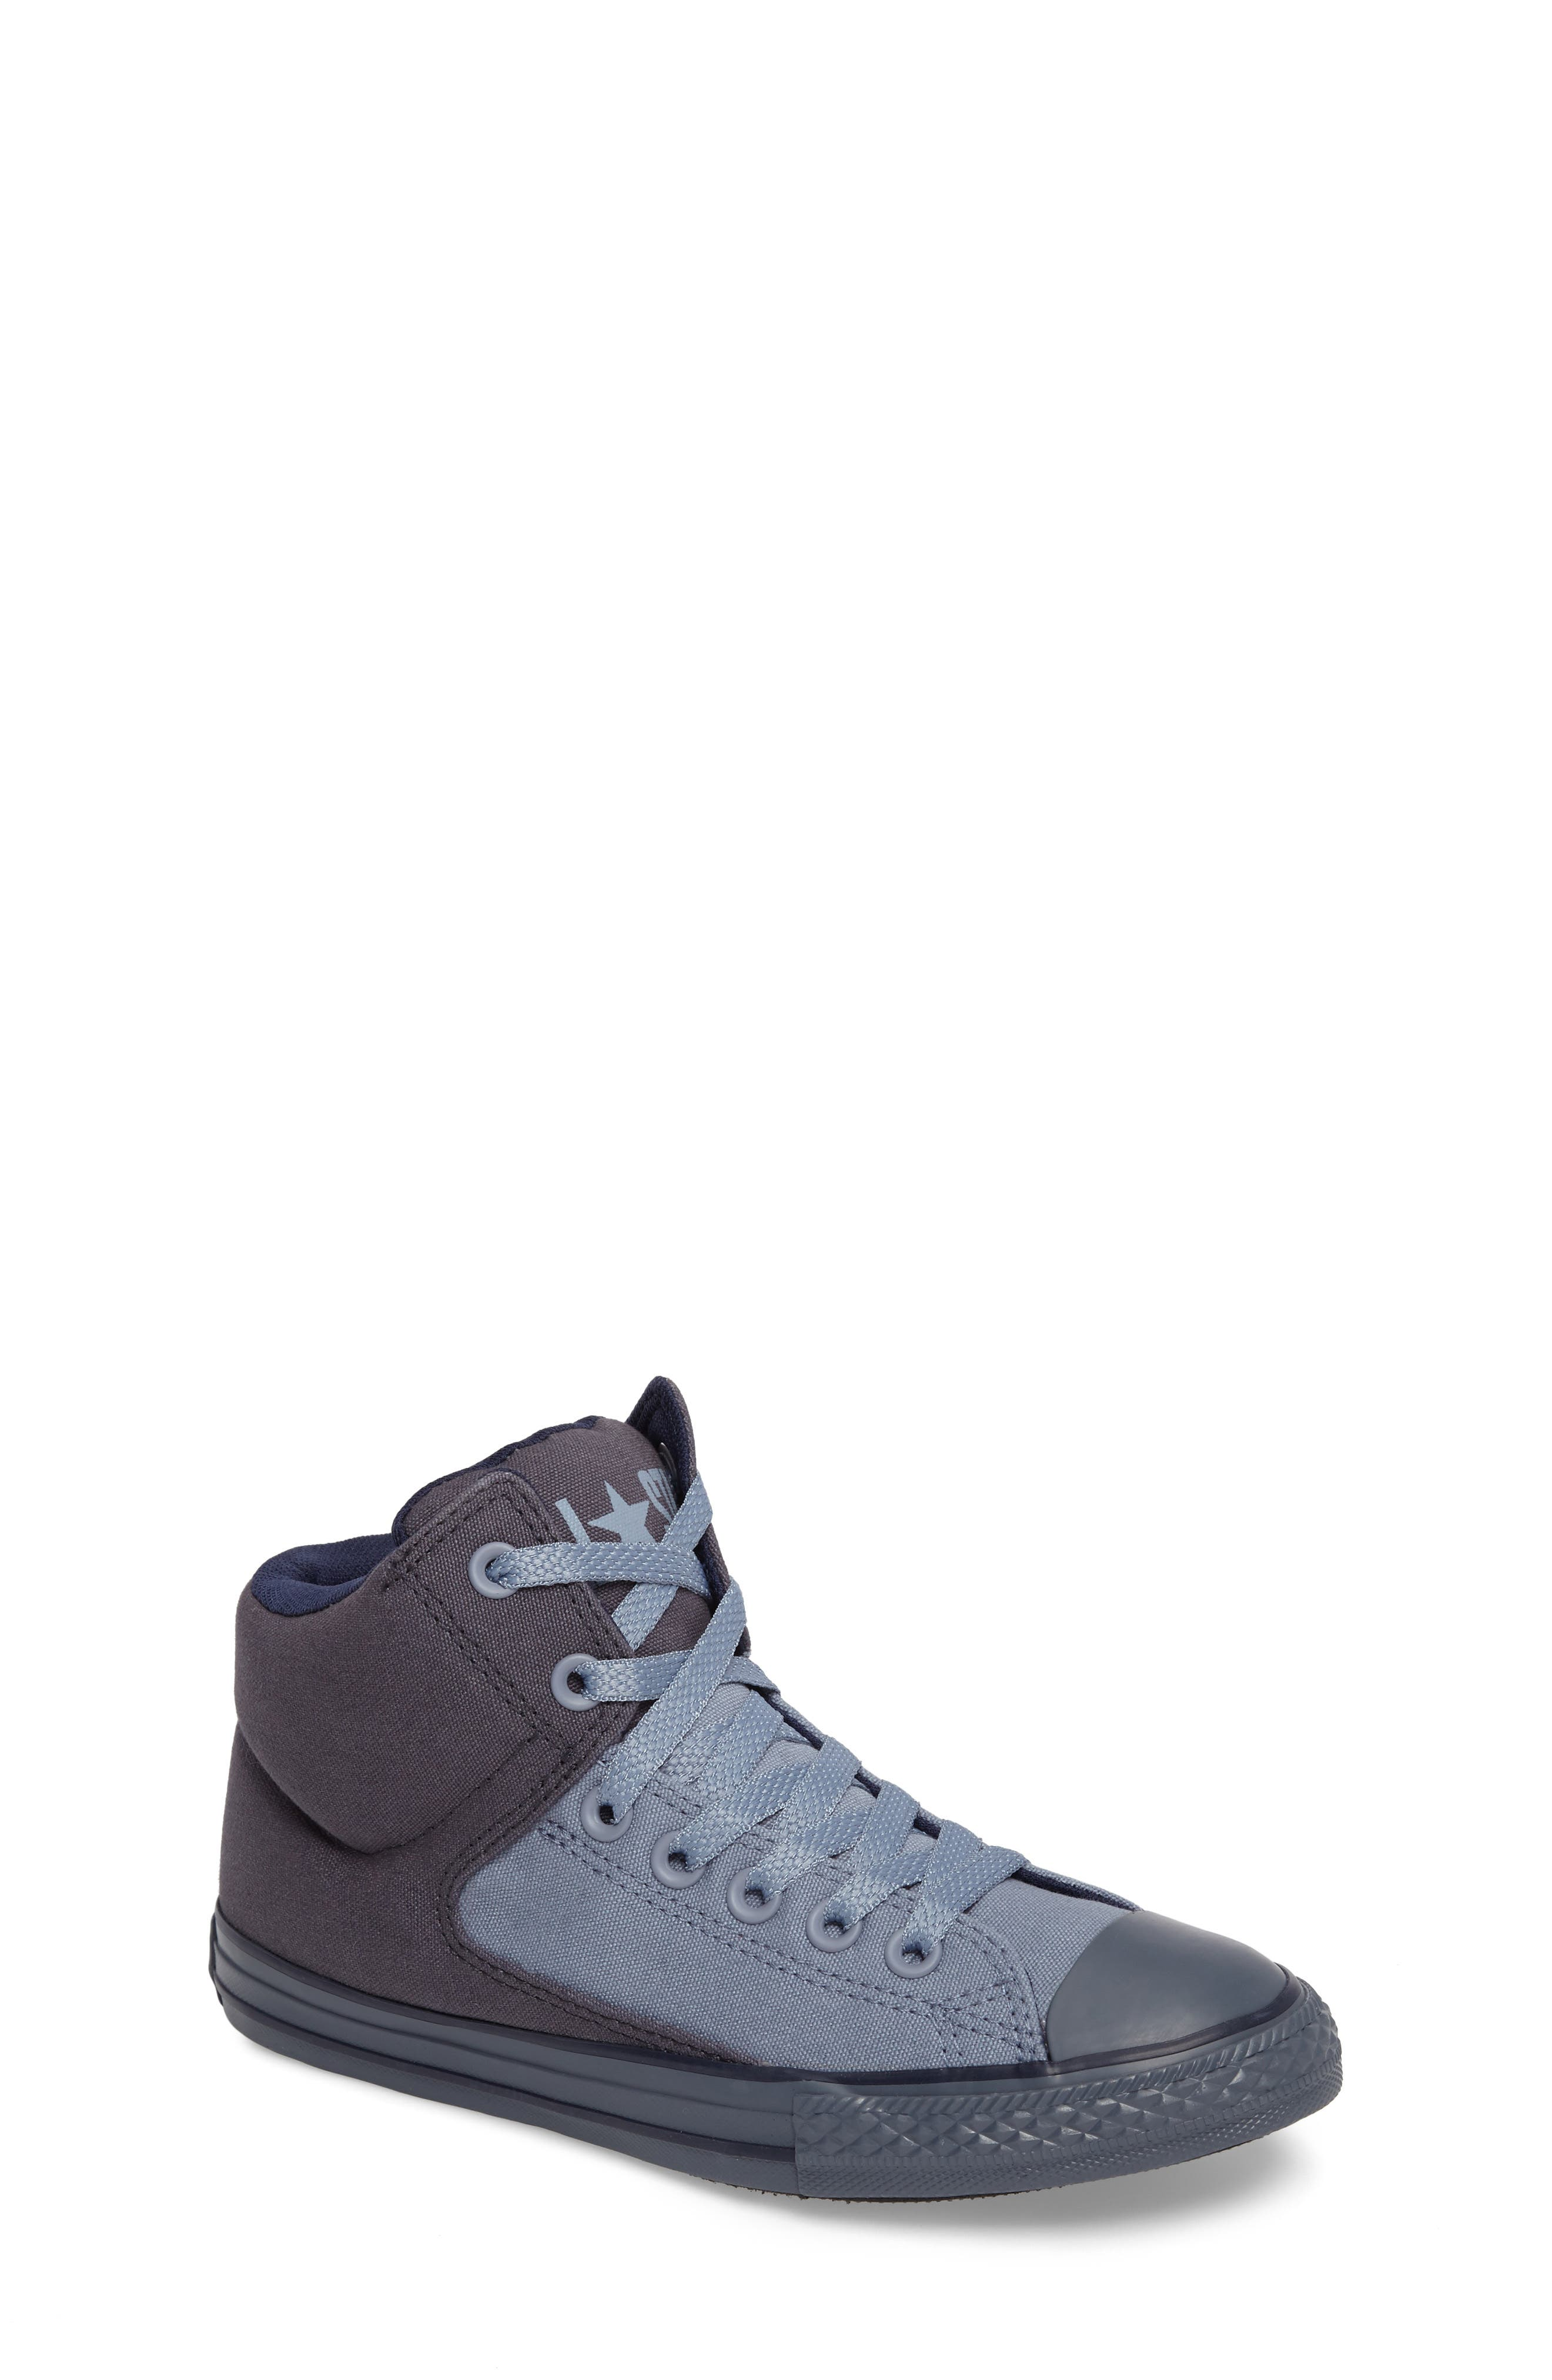 Chuck Taylor<sup>®</sup> All Star<sup>®</sup> High Street High Top Sneaker,                         Main,                         color, Sharkskin Canvas